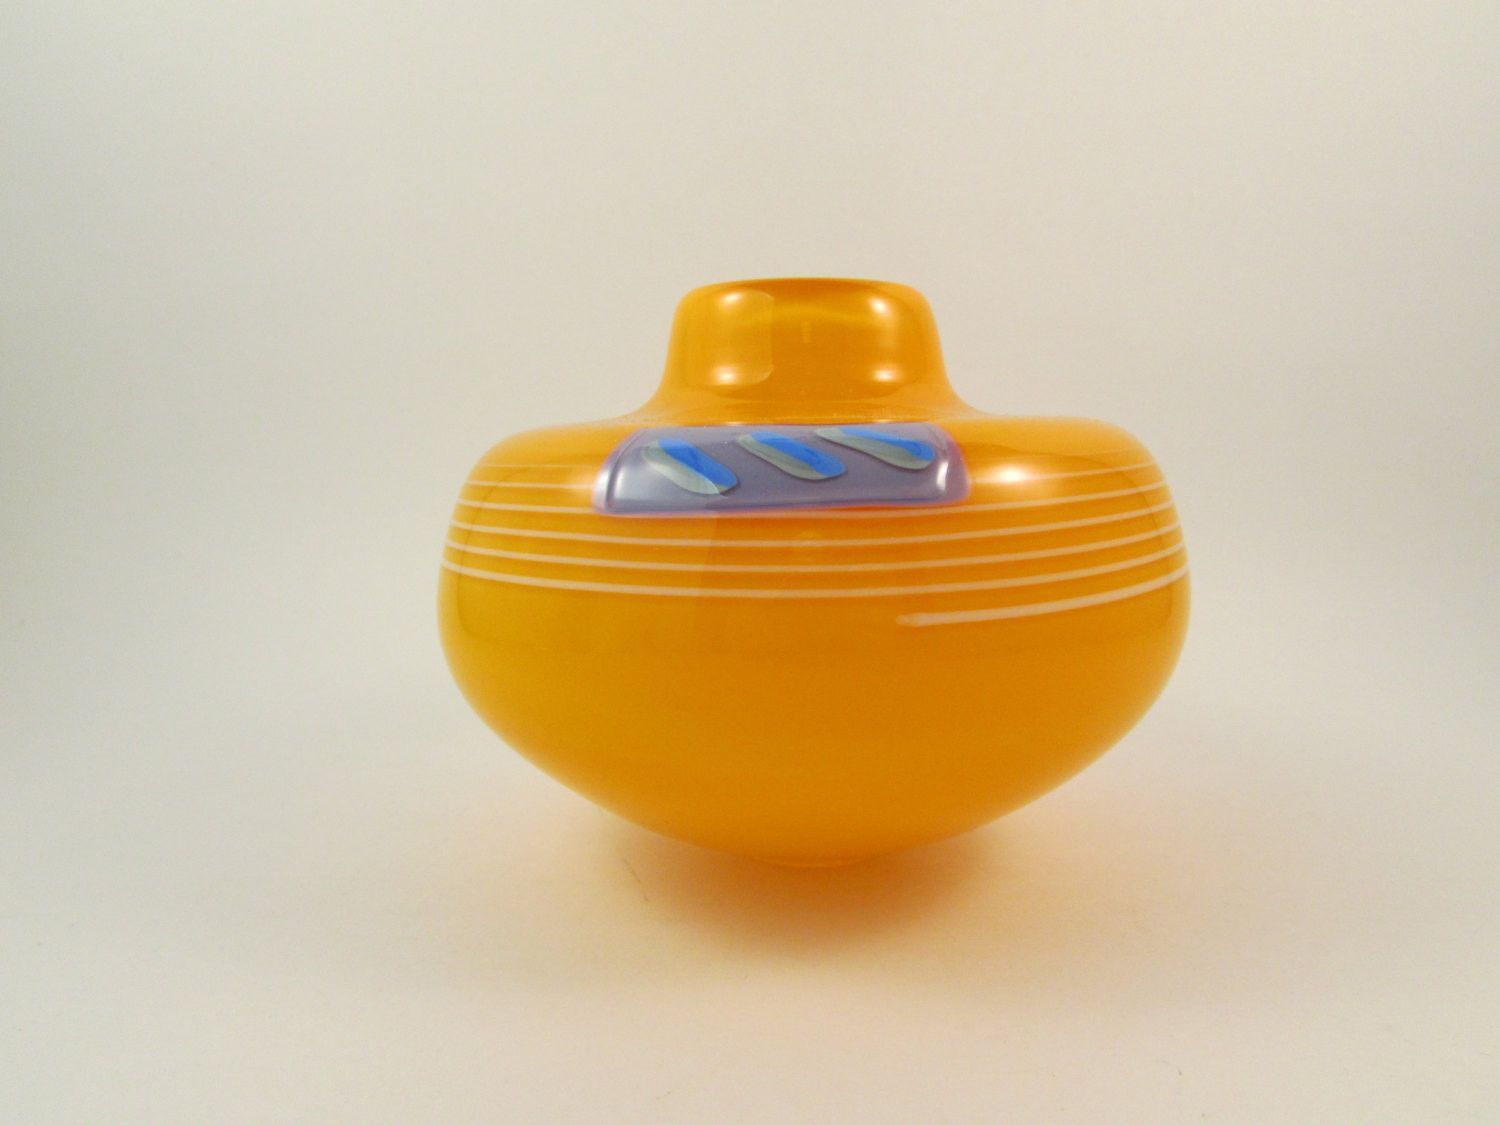 Vintage Glass Vase Hand Blown Orange Gray and White Artist Signed and Dated 1988 Fused Glass Vase